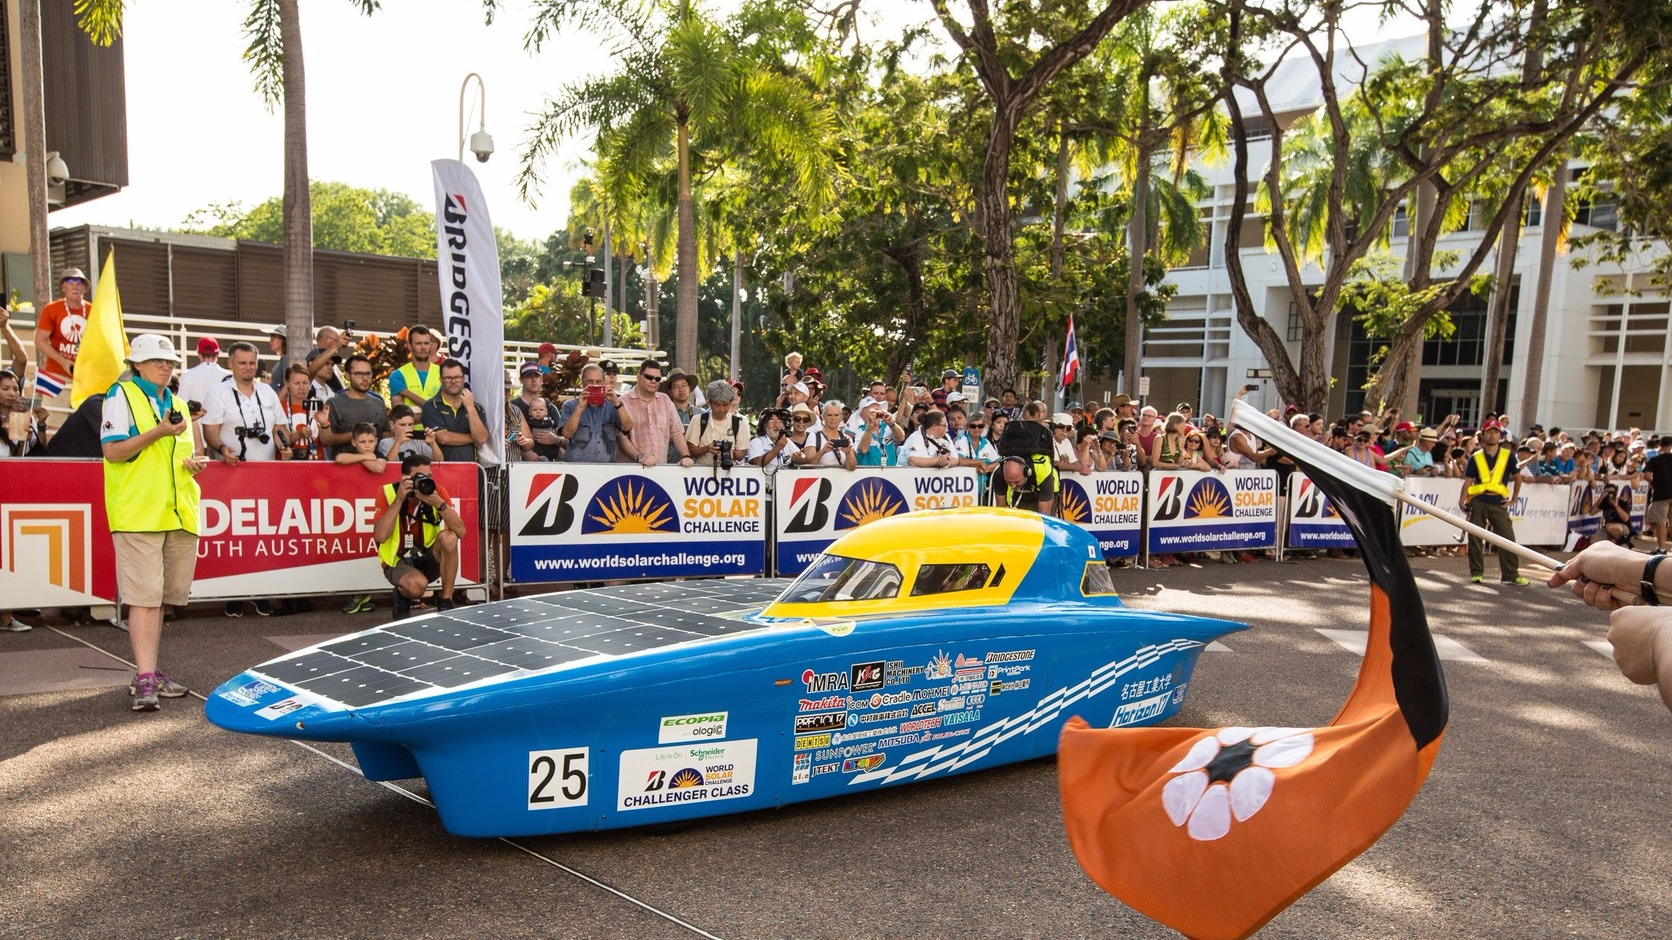 epa06251617 The Nitech Solar Racing Team from Japan with their Horizon 17 car as the World Solar Challenge begins at Parliament House in Darwin, Northern Territory, Australia, 08 October 2017. The solar-powered vehicles race will travel 3,000km to the finish in Adelaide, South Australia on 15 October.  EPA/GLENN CAMPBELL  AUSTRALIA AND NEW ZEALAND OUT